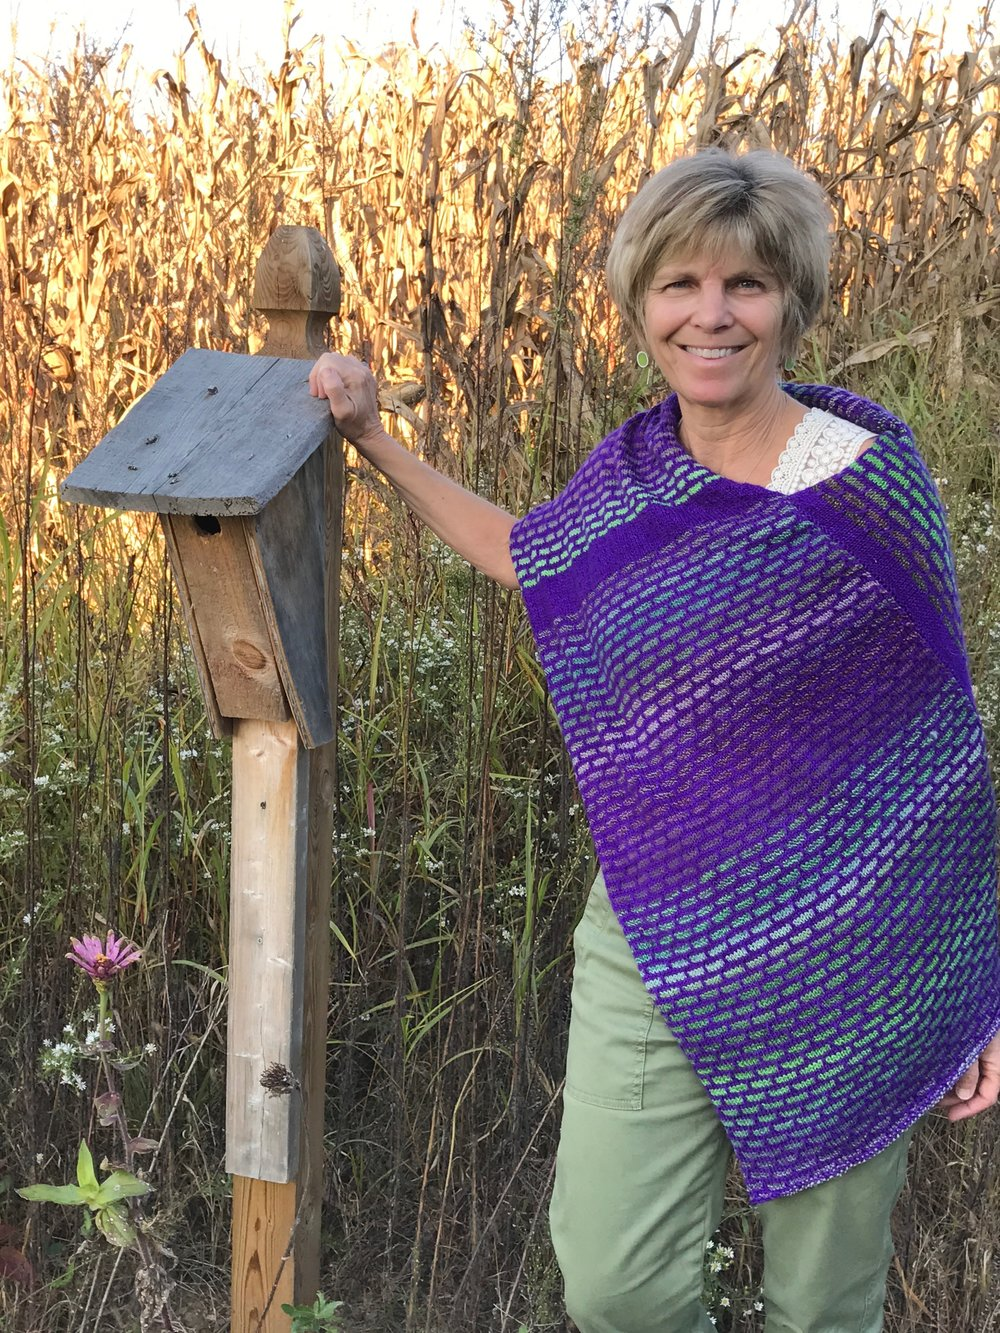 I've knit my way through many a television show, airplane trip and sporting event. Here's a poncho I recently created. I'm thinking of writing up the pattern to include with the sale of one of my yarn bowls. What's the verdict? Would you like to make one for yourself?